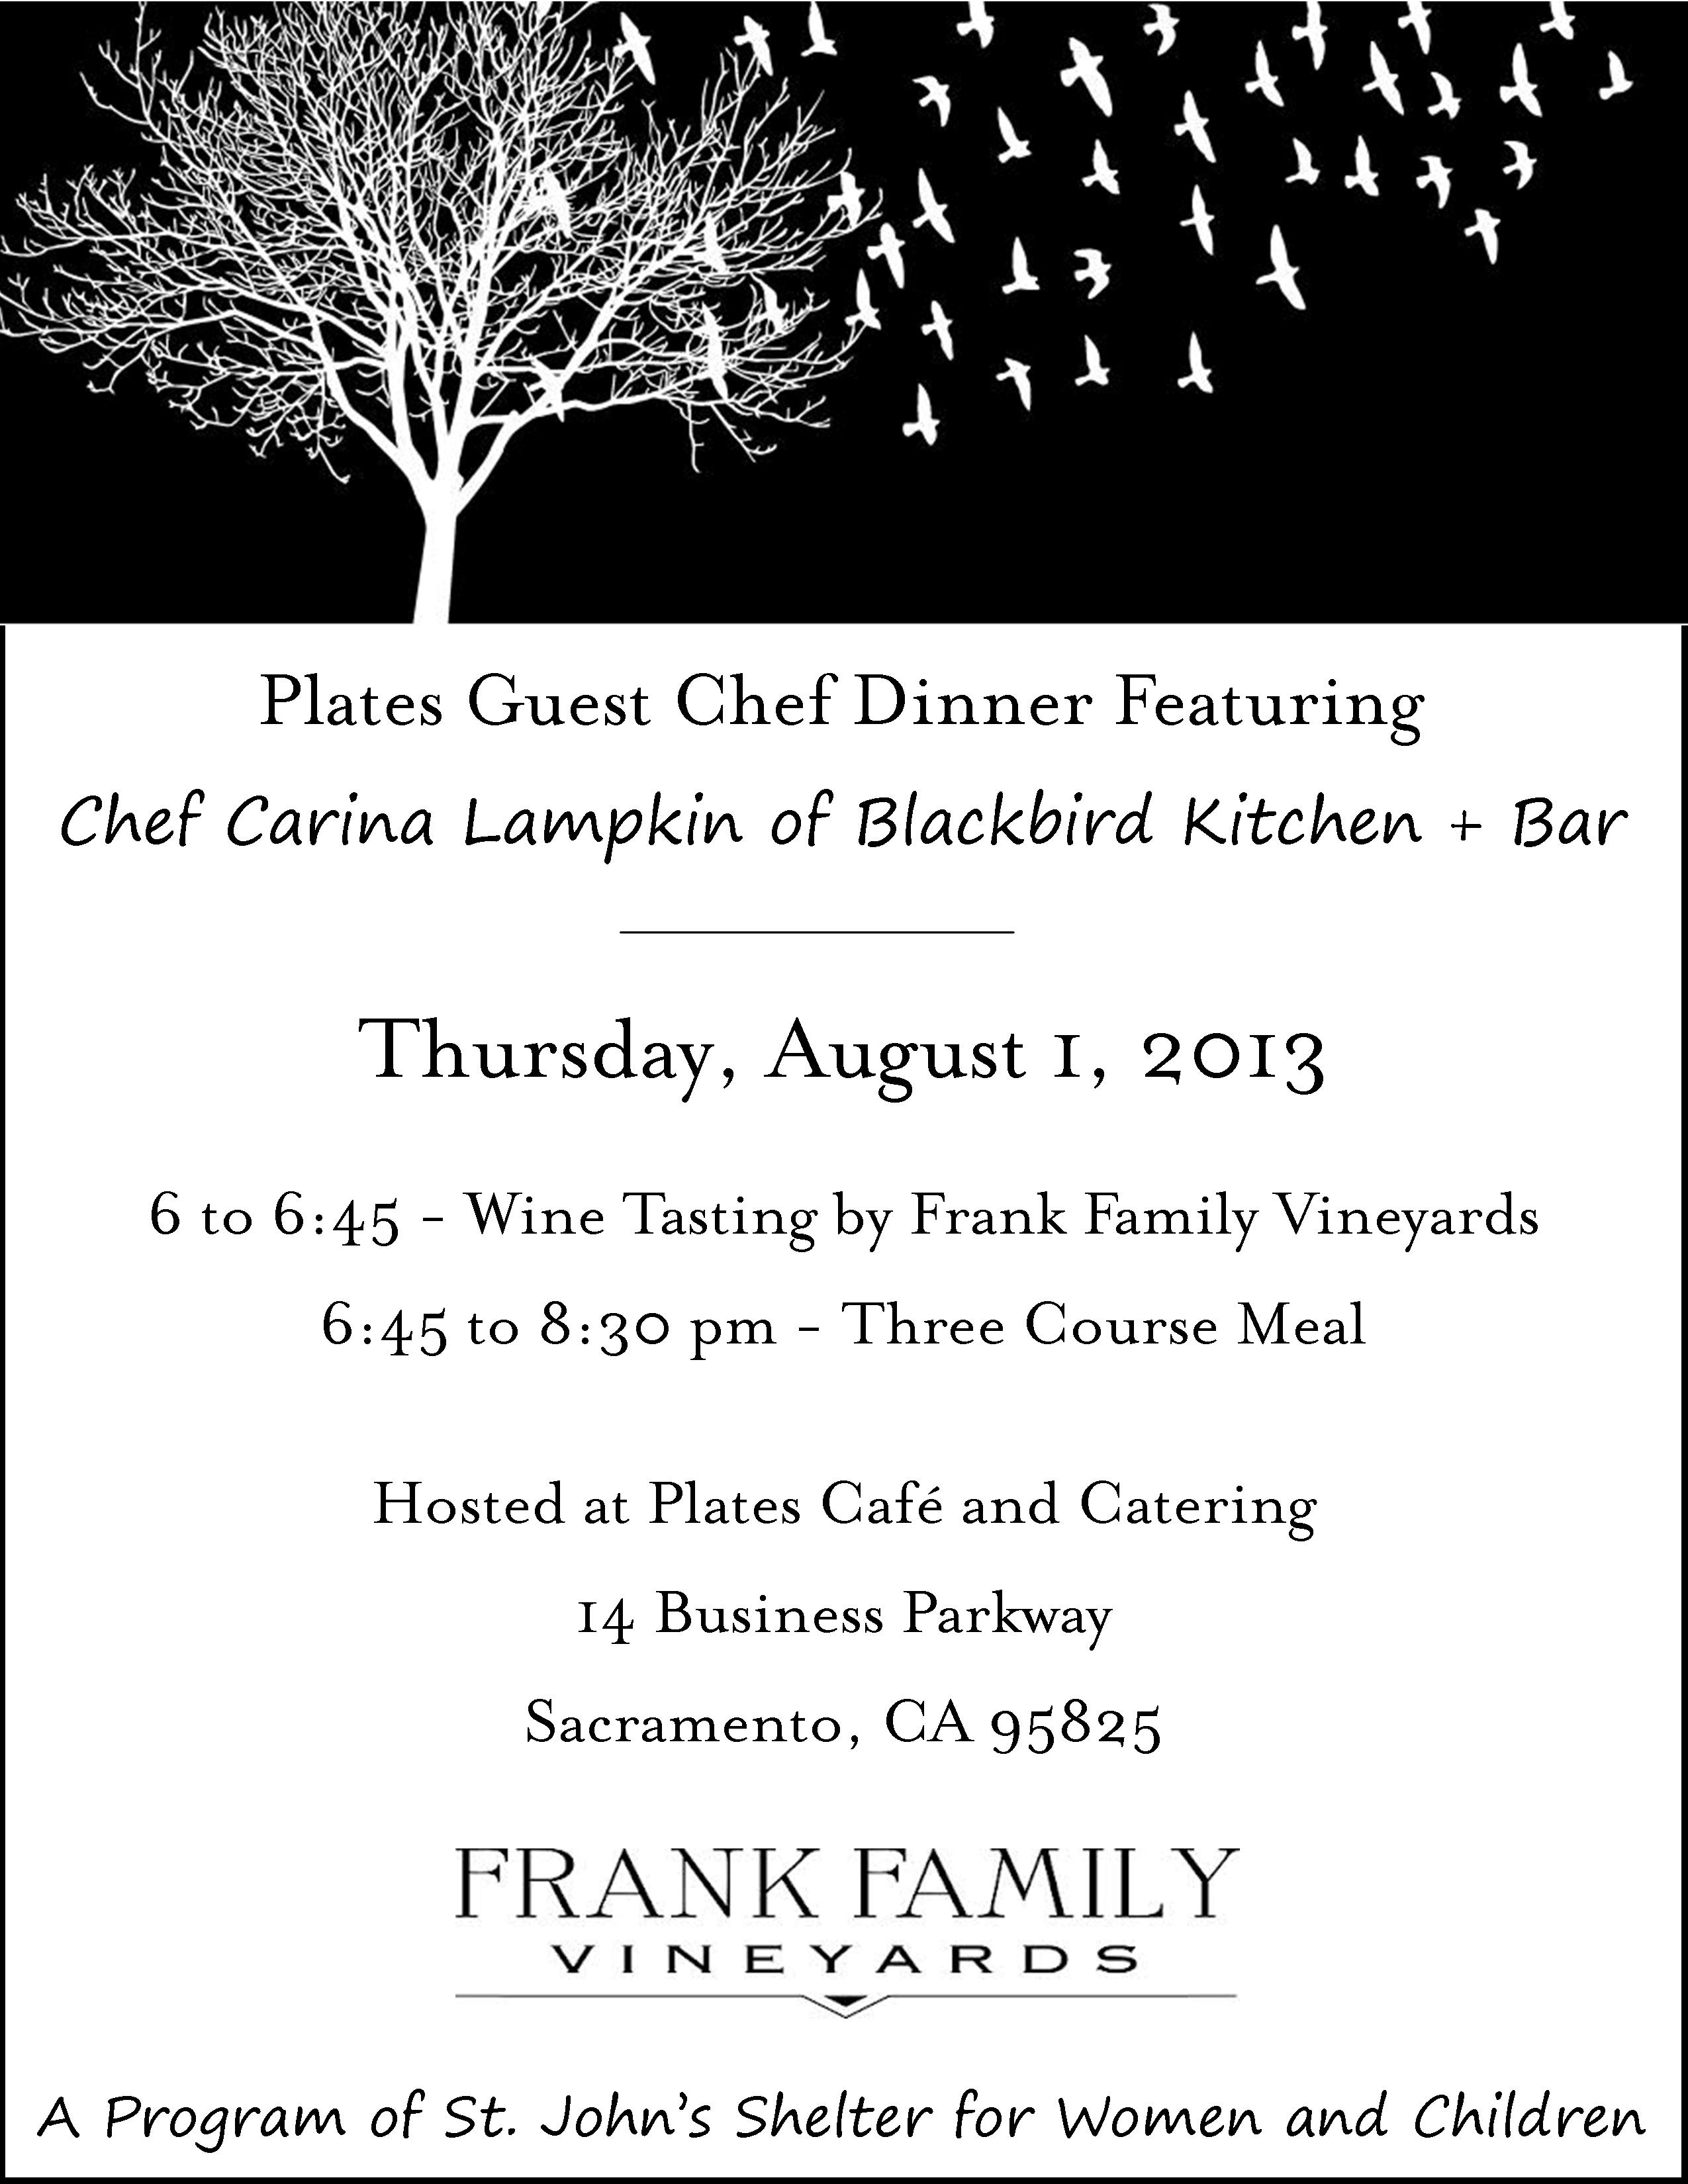 Featuring Chef Carina Lampkin of Blackbird Kitchen + Bar